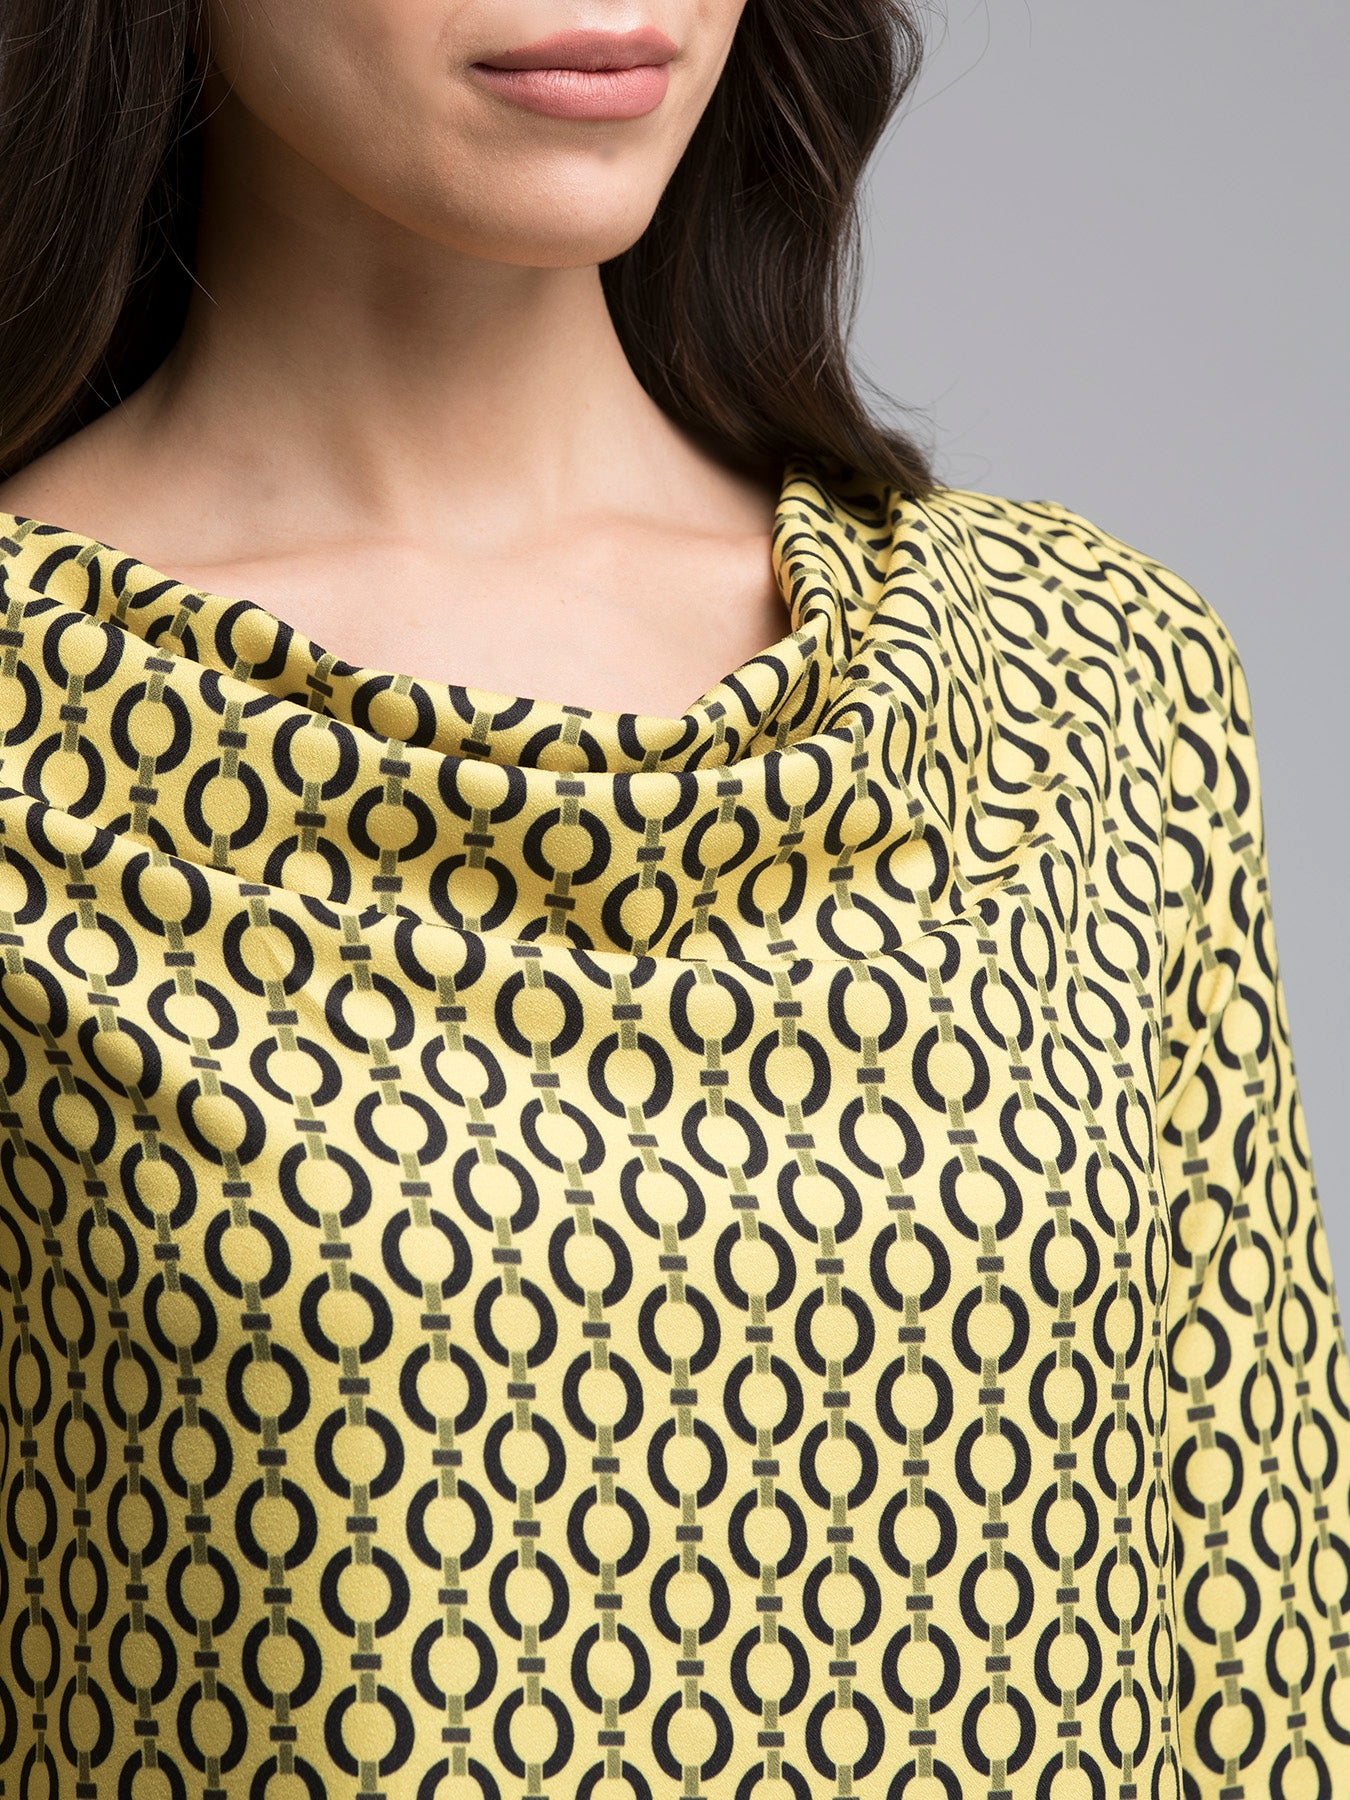 Cowl Neck Geometric Print Top - Yellow and Black